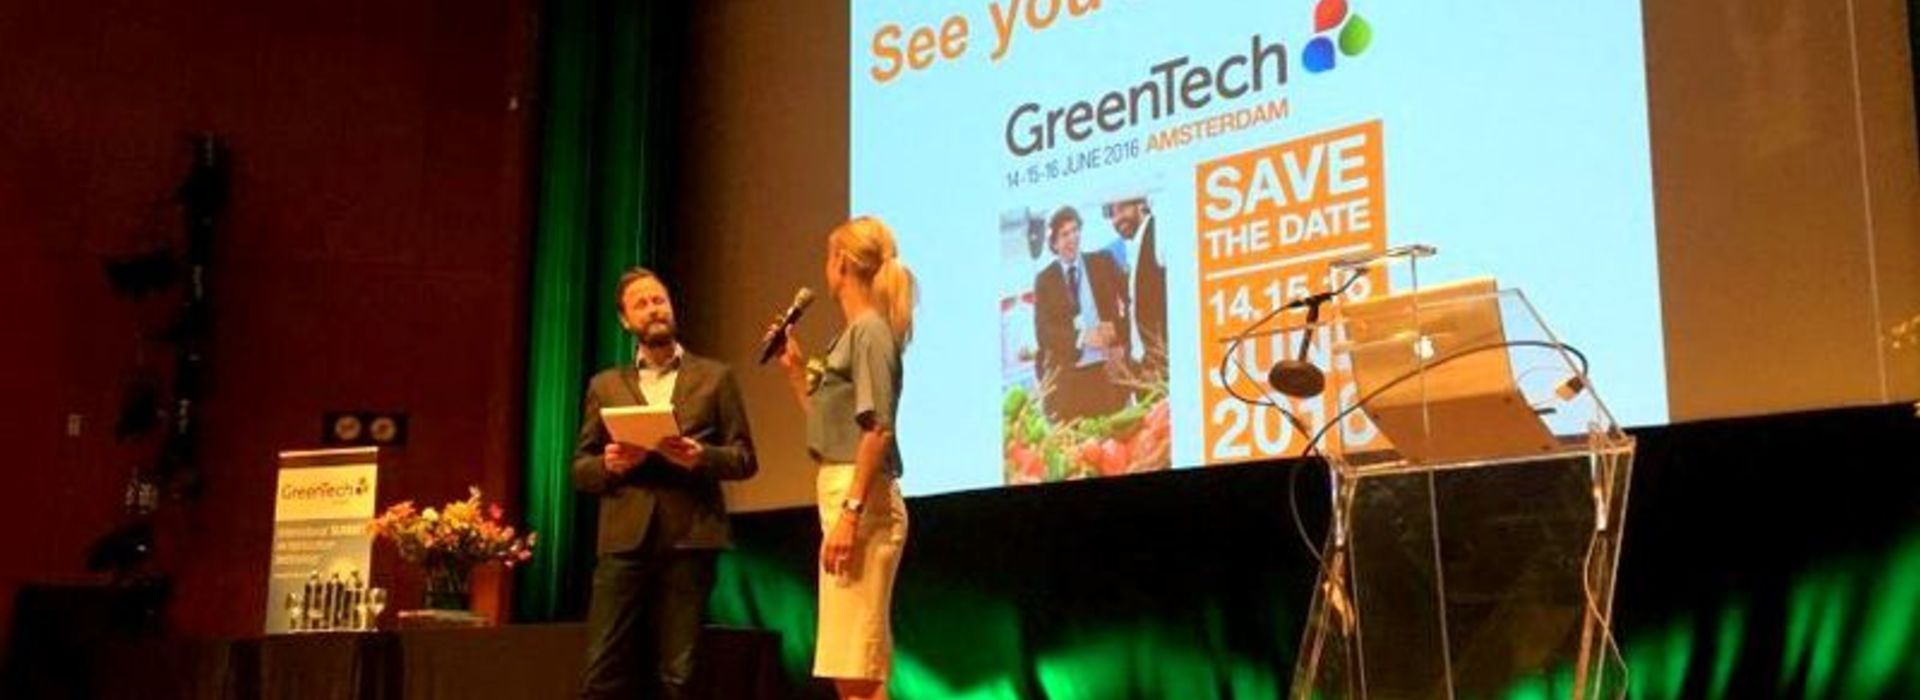 RAI Amsterdam: Greentech Summit 2015